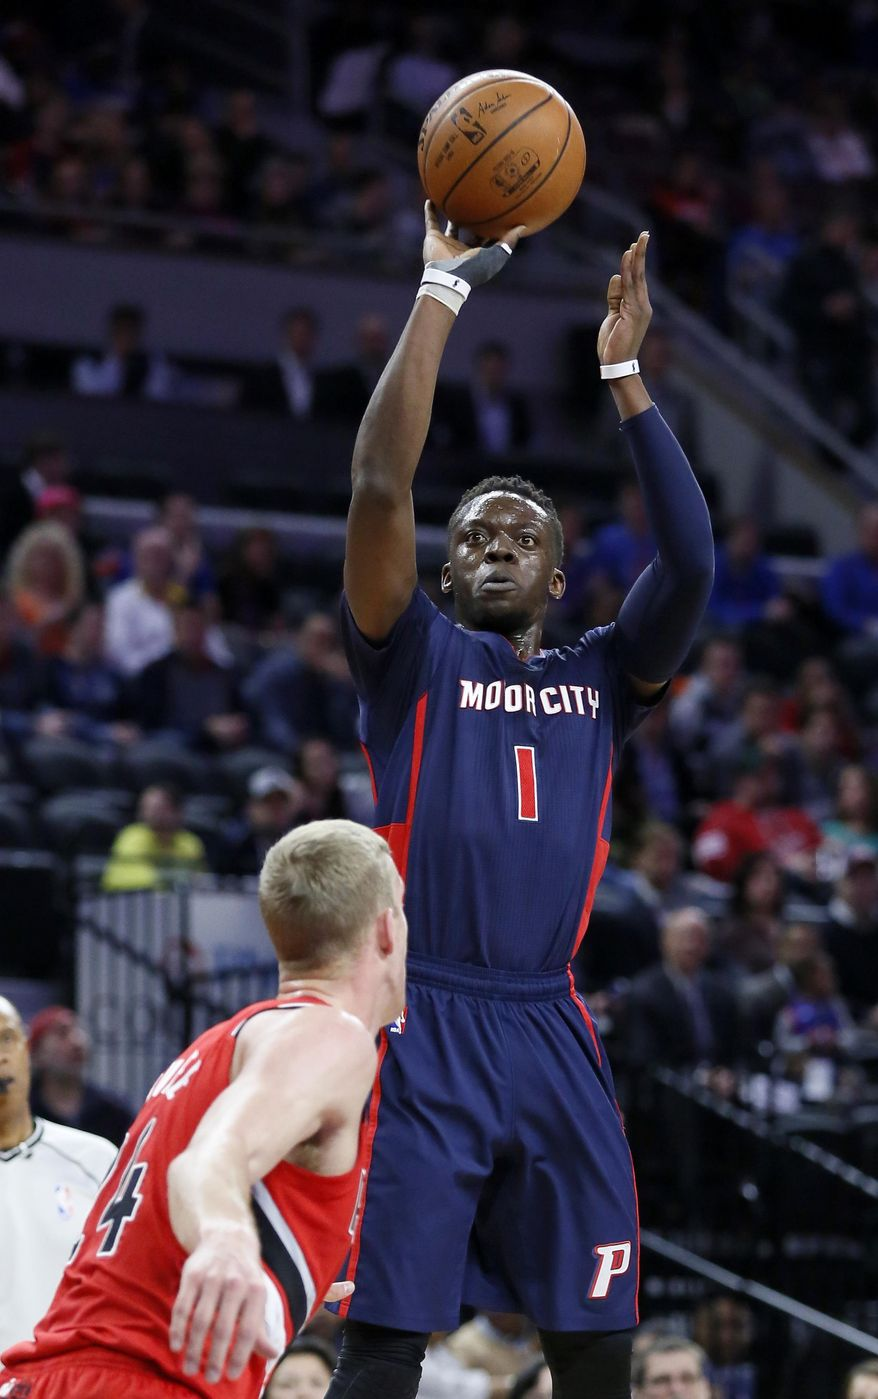 Detroit Pistons' Reggie Jackson (1) takes a shot against Portland Trail Blazers' Mason Plumlee during the first half of an NBA basketball game on Sunday, March 6, 2016, in Auburn Hills, Mich. (AP Photo/Duane Burleson)